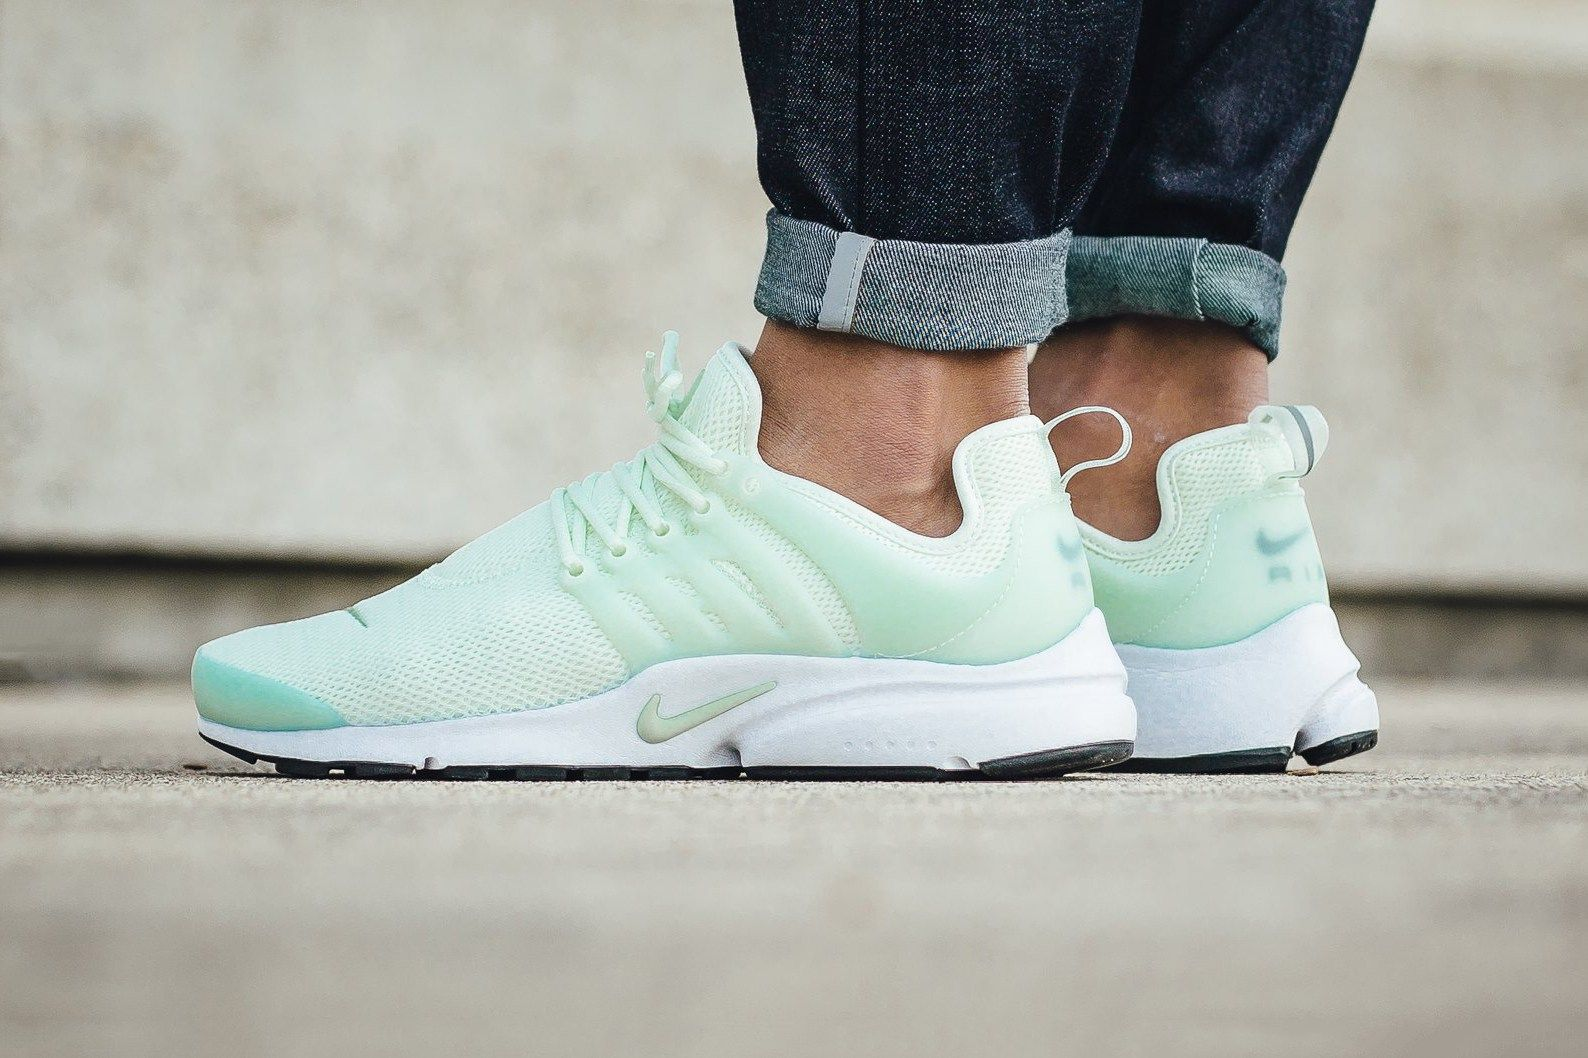 387e43a6cbdb Minty Pastel Green Hits the Nike Air Presto